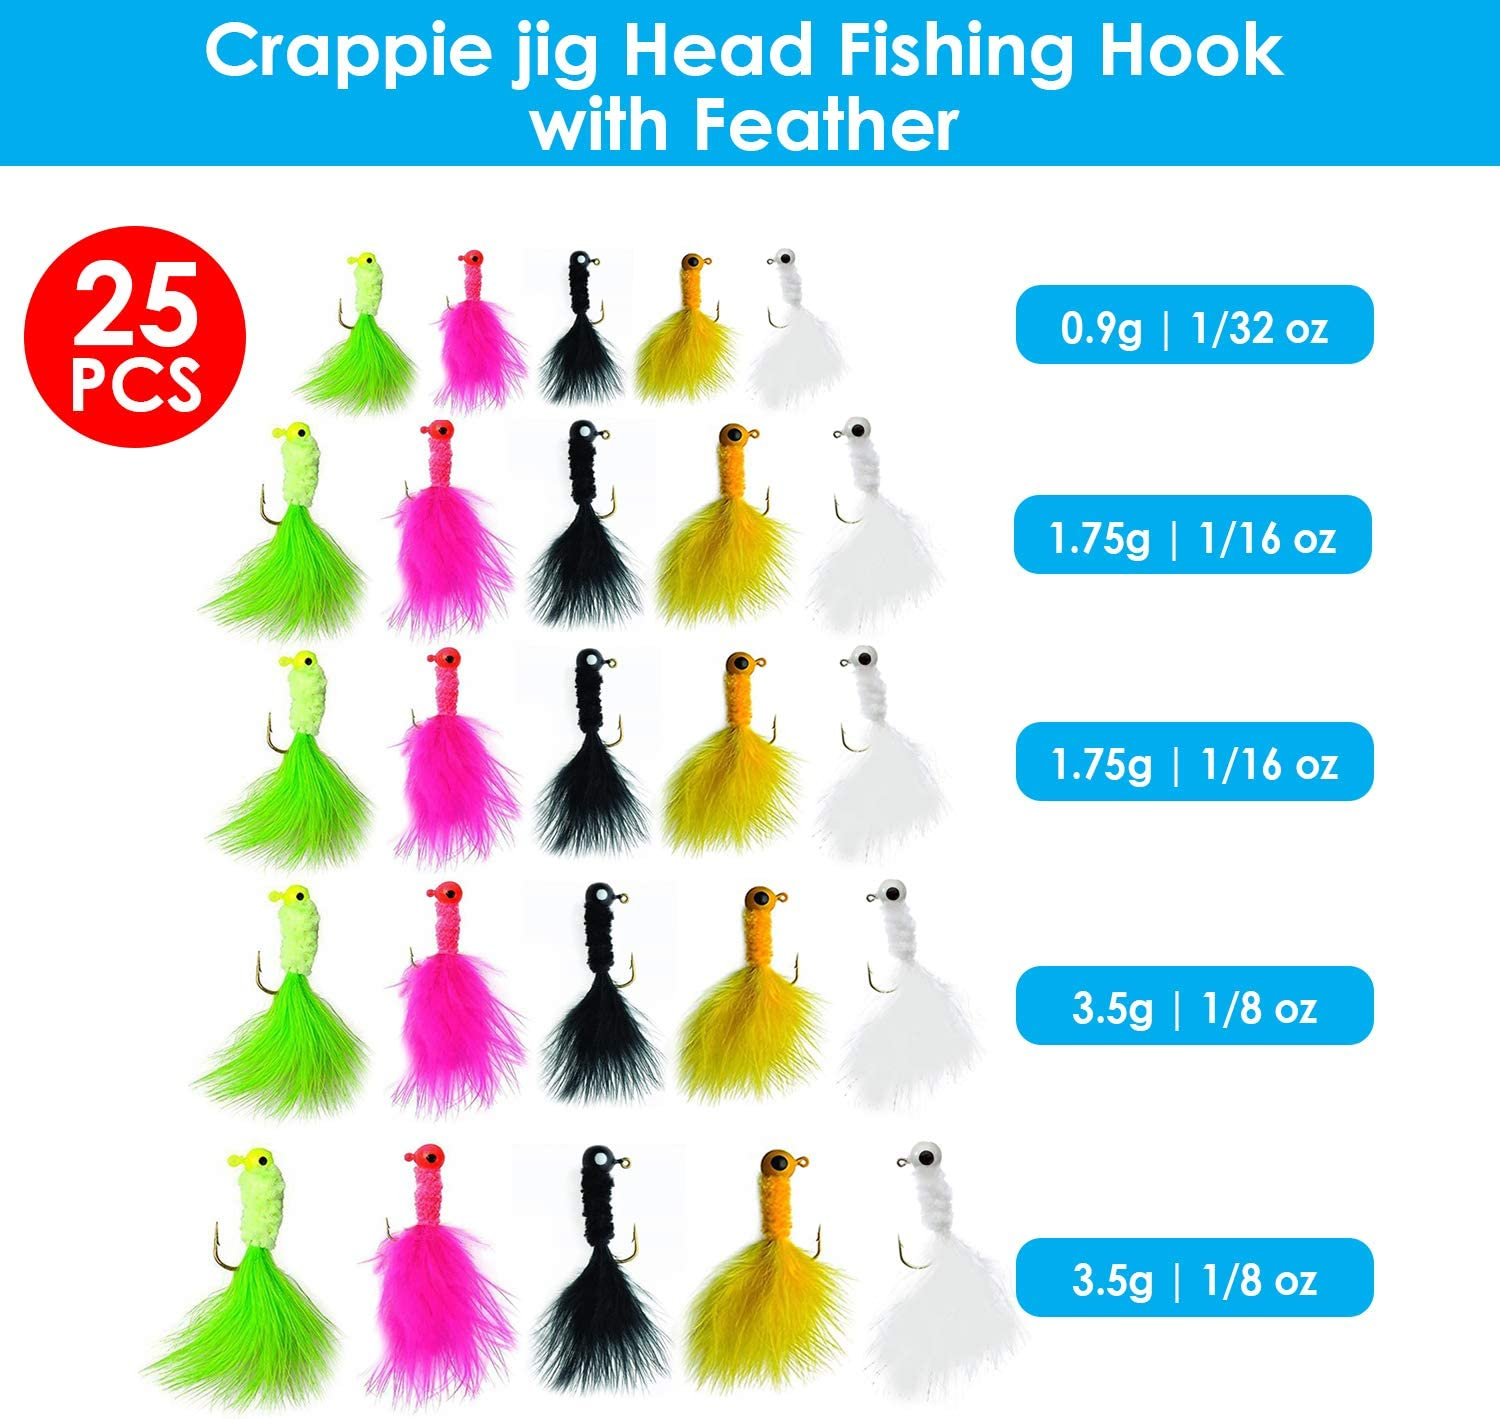 25 Piece Crappie jig Head Fishing Hook with Feather Fly Fishing jig Hooks